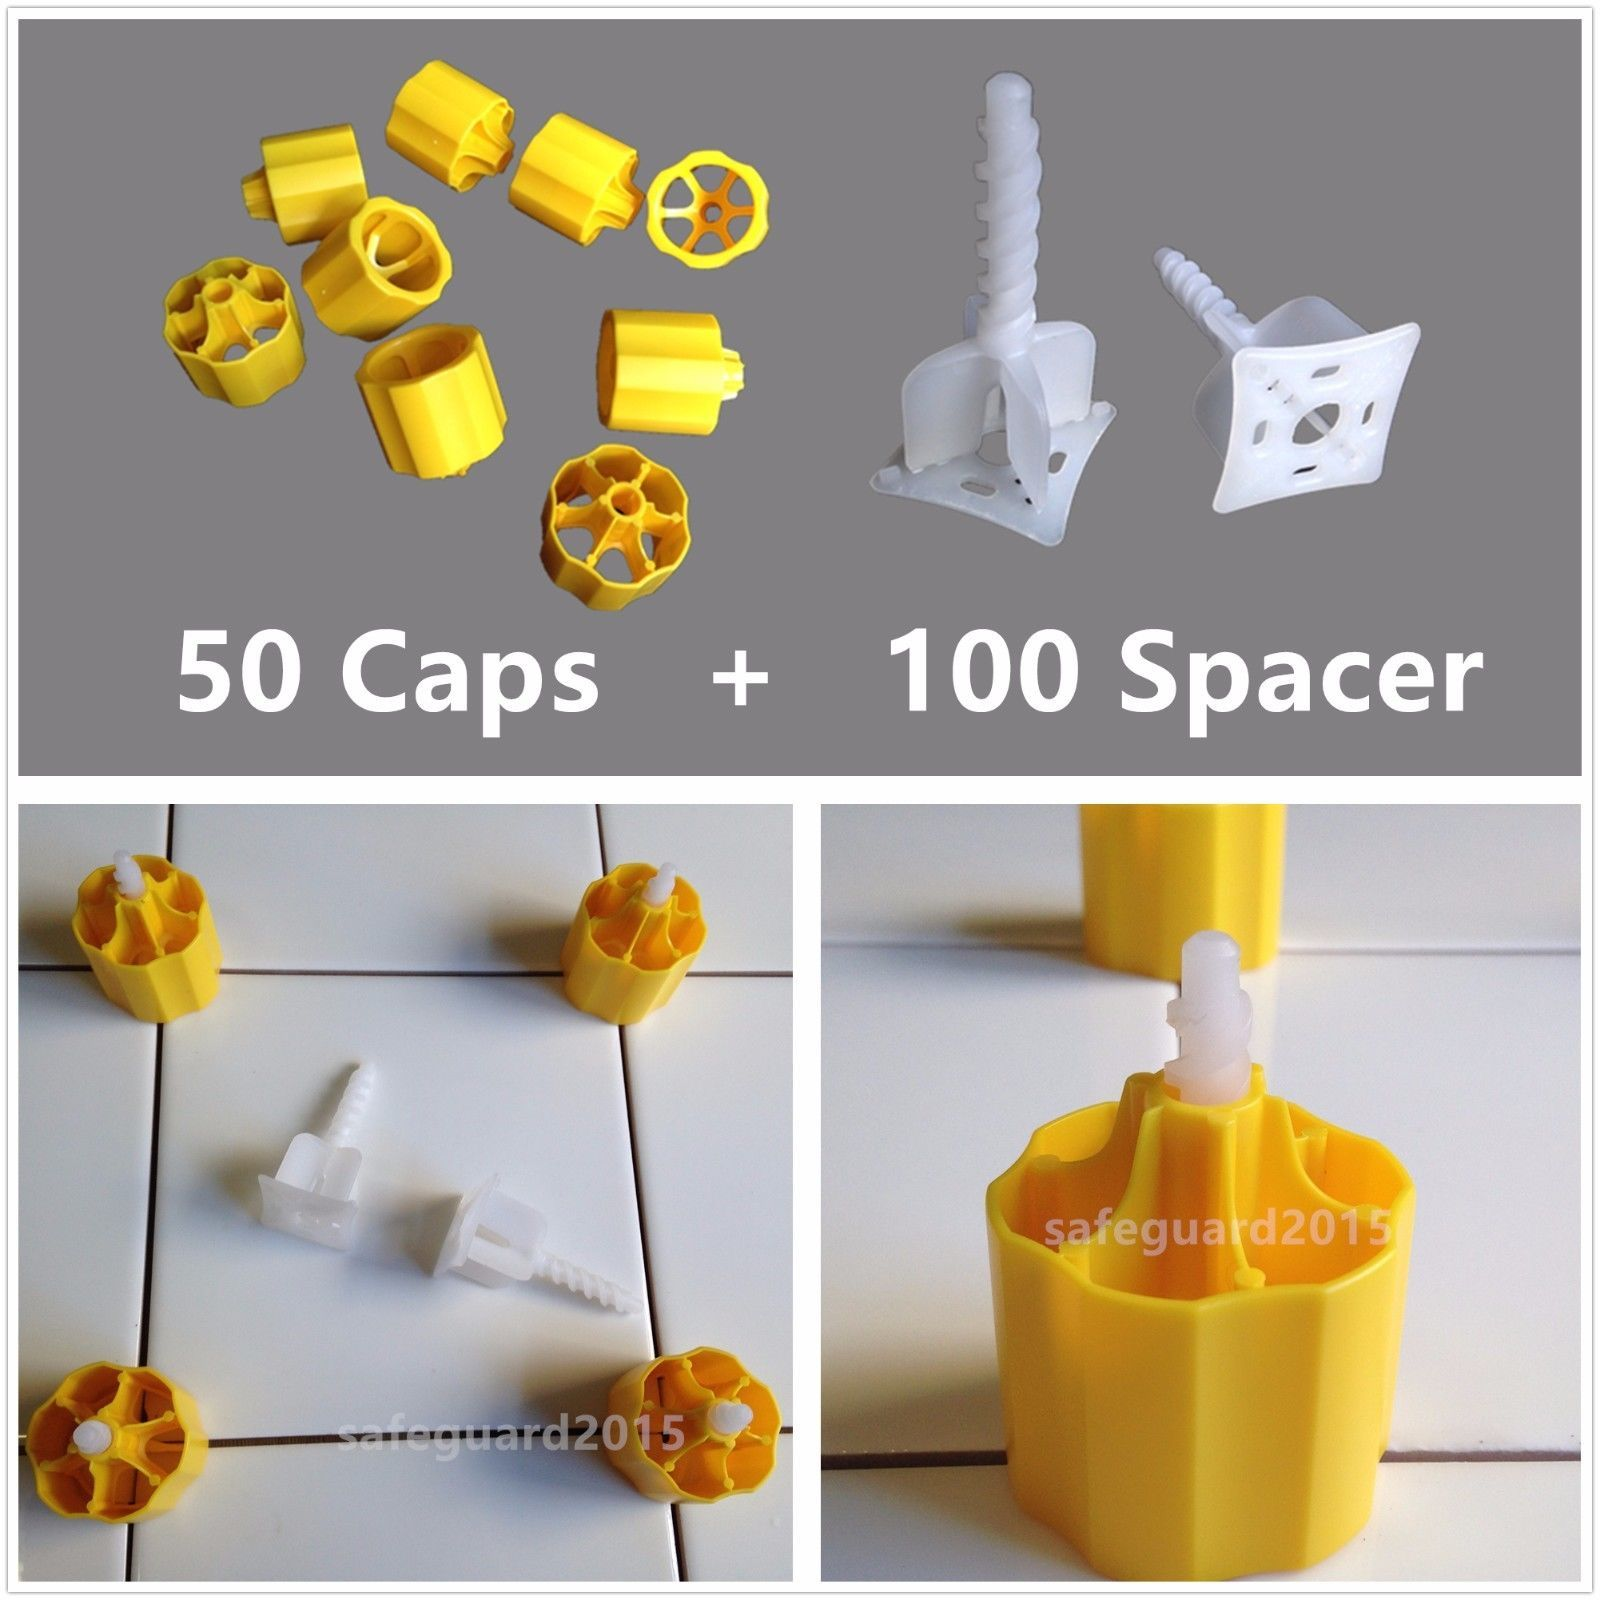 Details About Tile Leveling System 50 Caps 100 Cross Spacers Plastic Flooring Tool Kits Tile Leveling System Flooring Tools Flooring